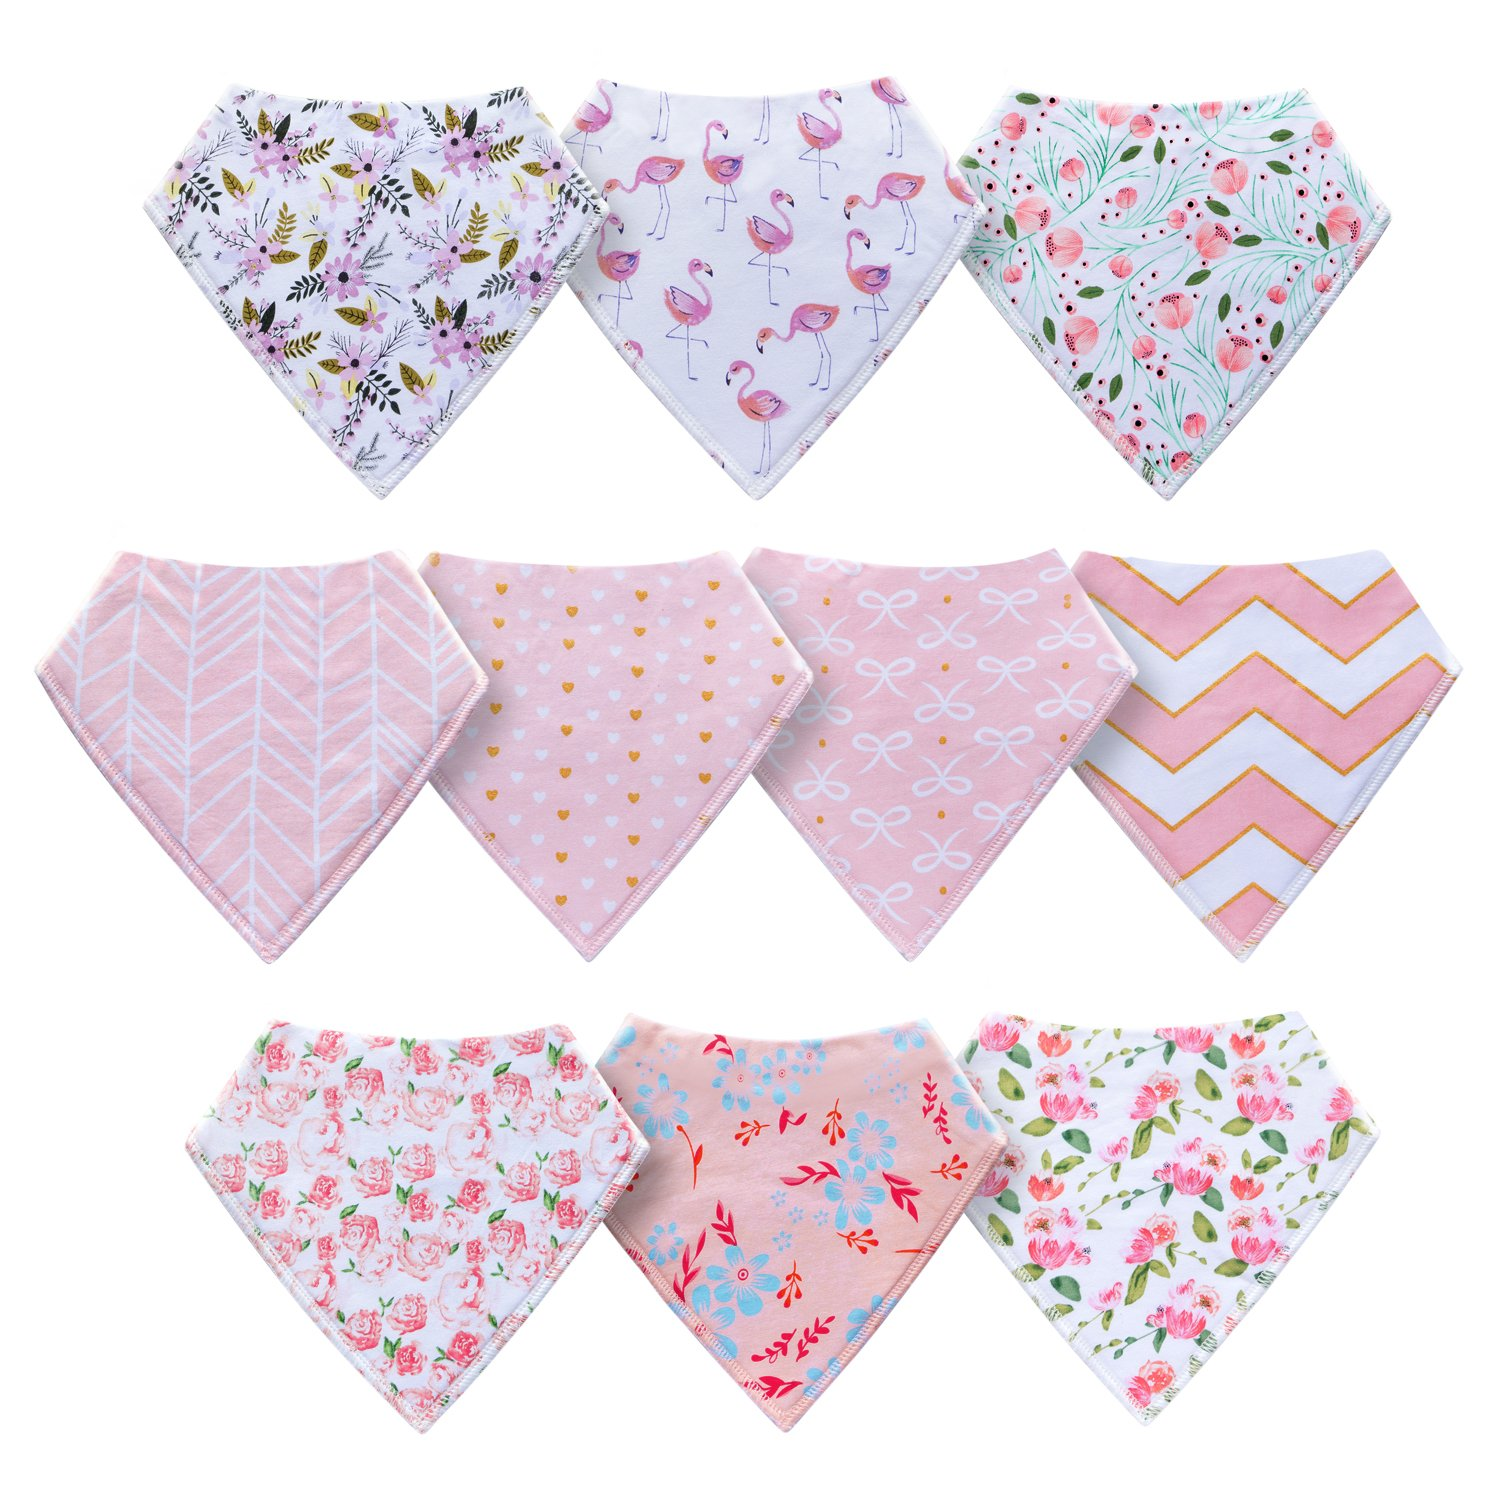 10-Pack Baby Girl Bandana Drool Bibs for Drooling and Teething by MiiYoung by MiiYoung (Image #2)